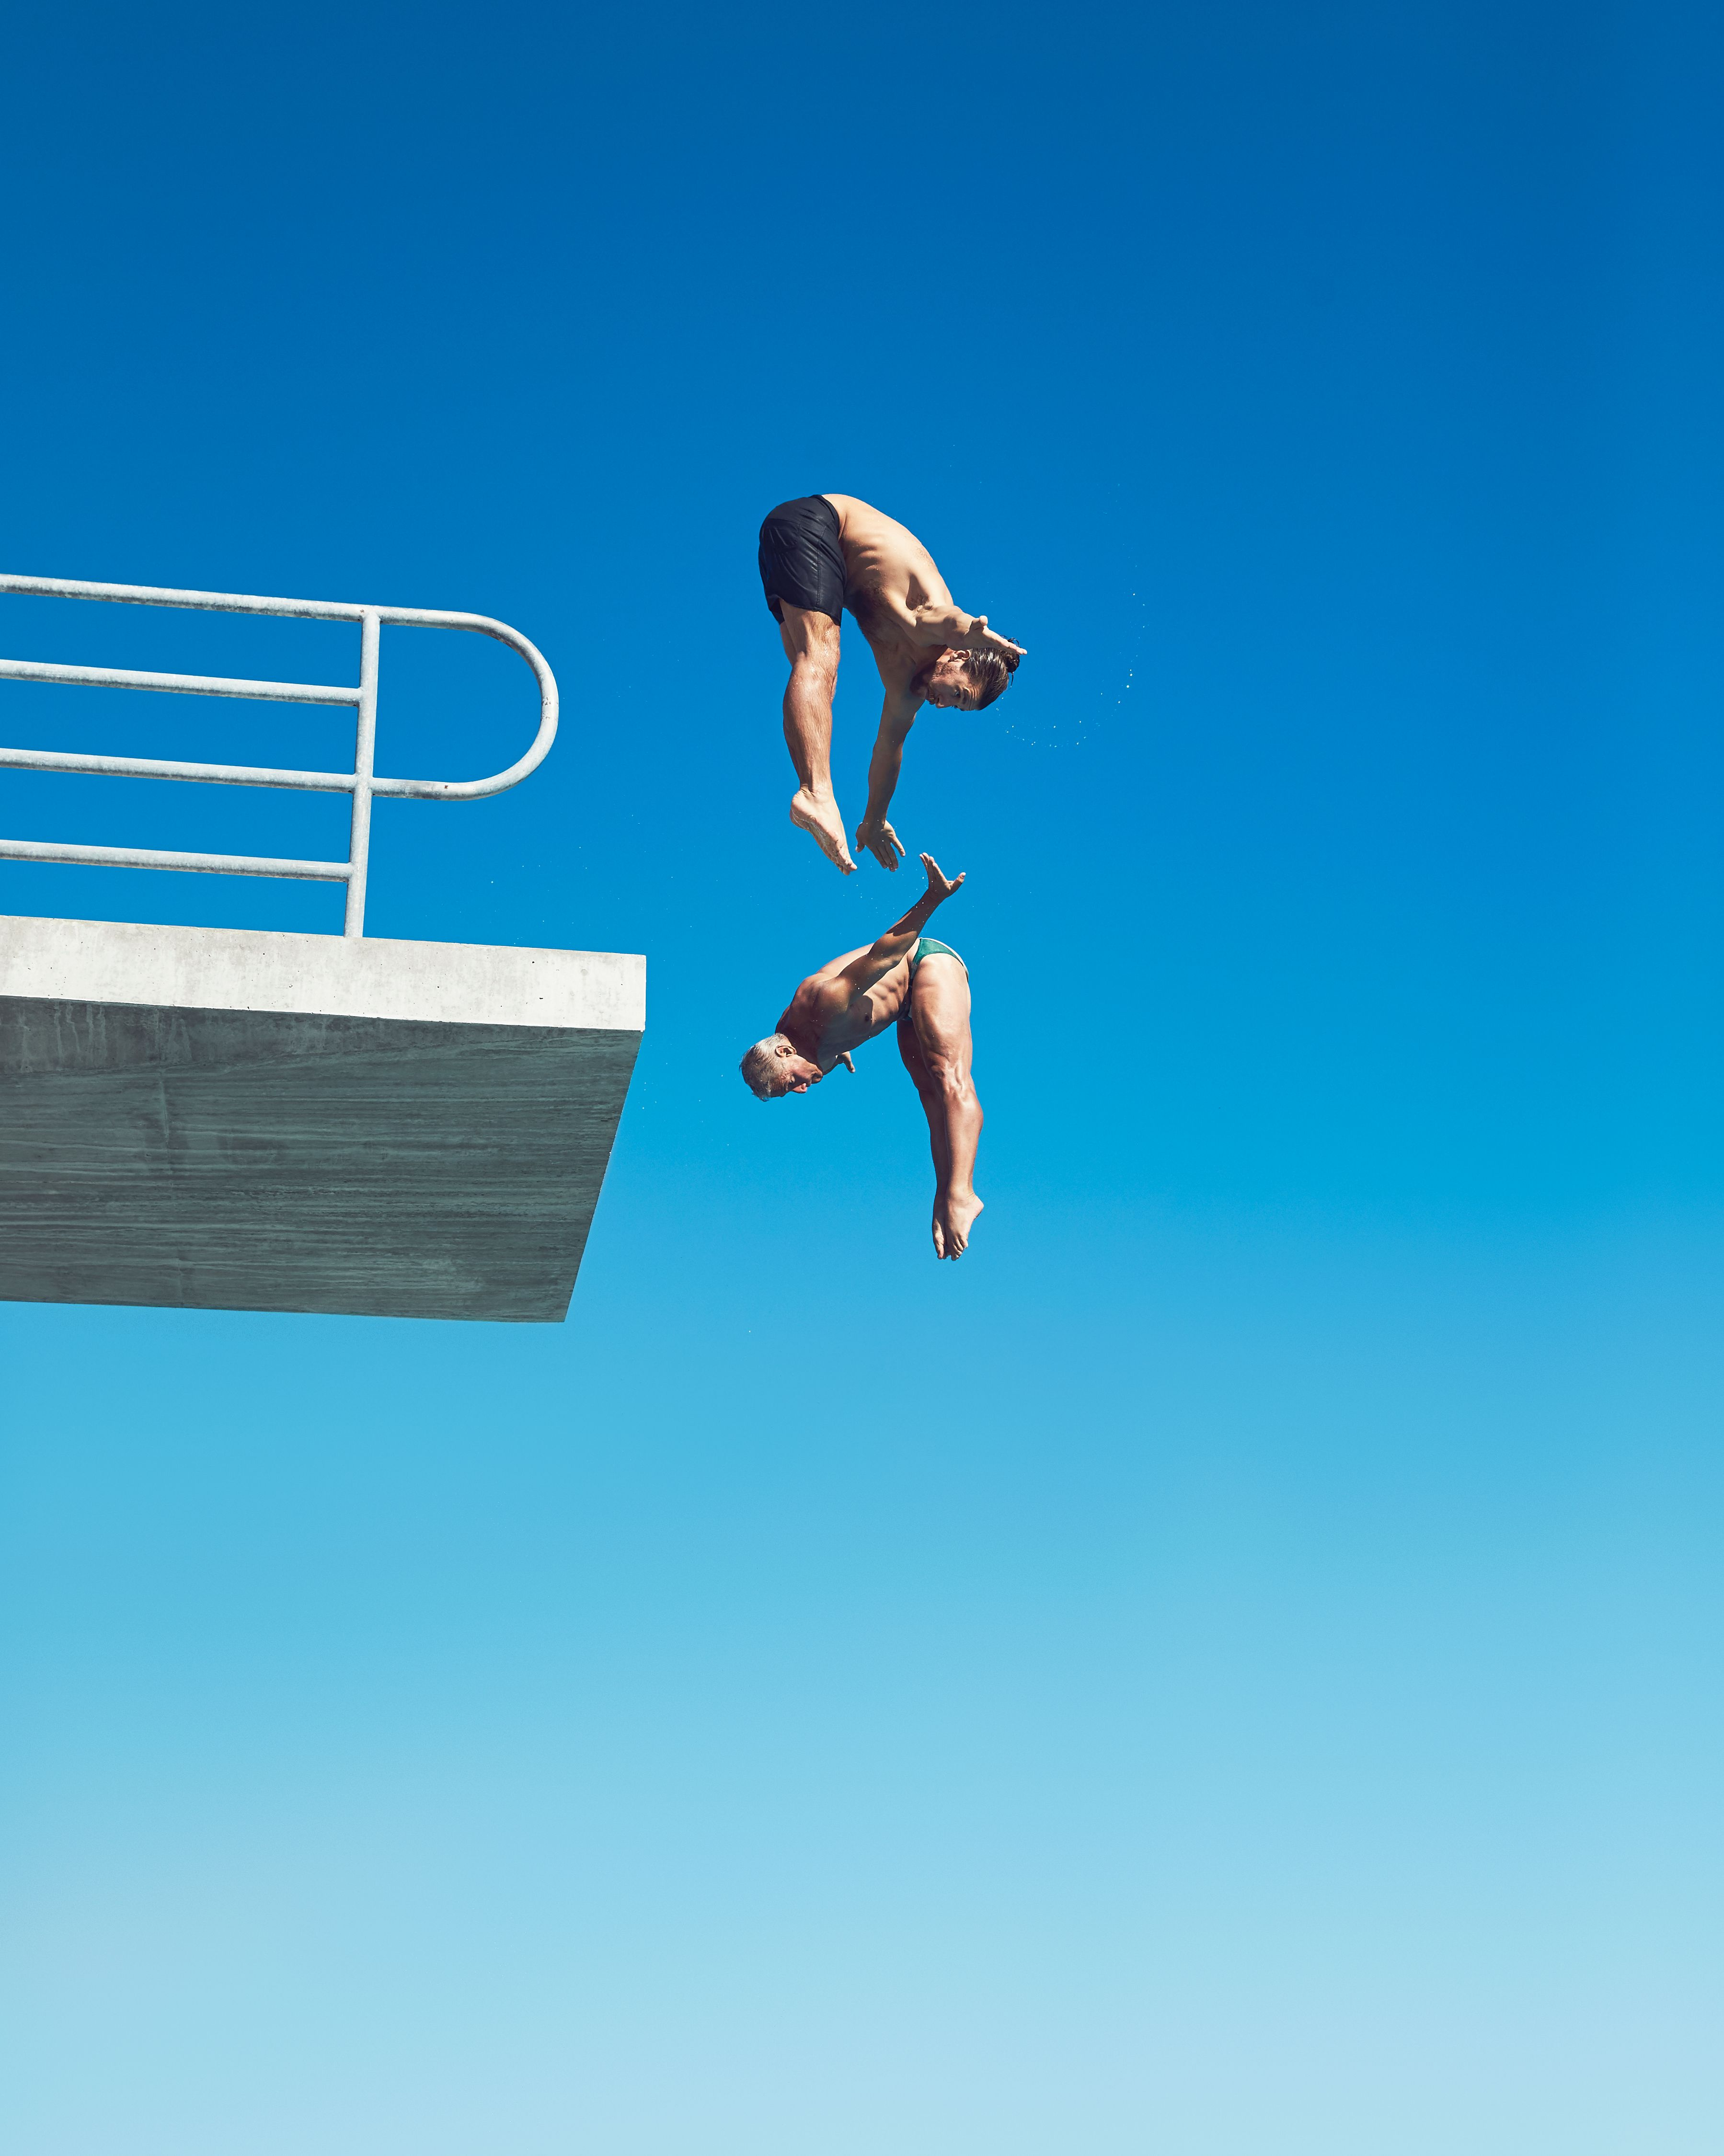 malouf demonstrates that a leap of